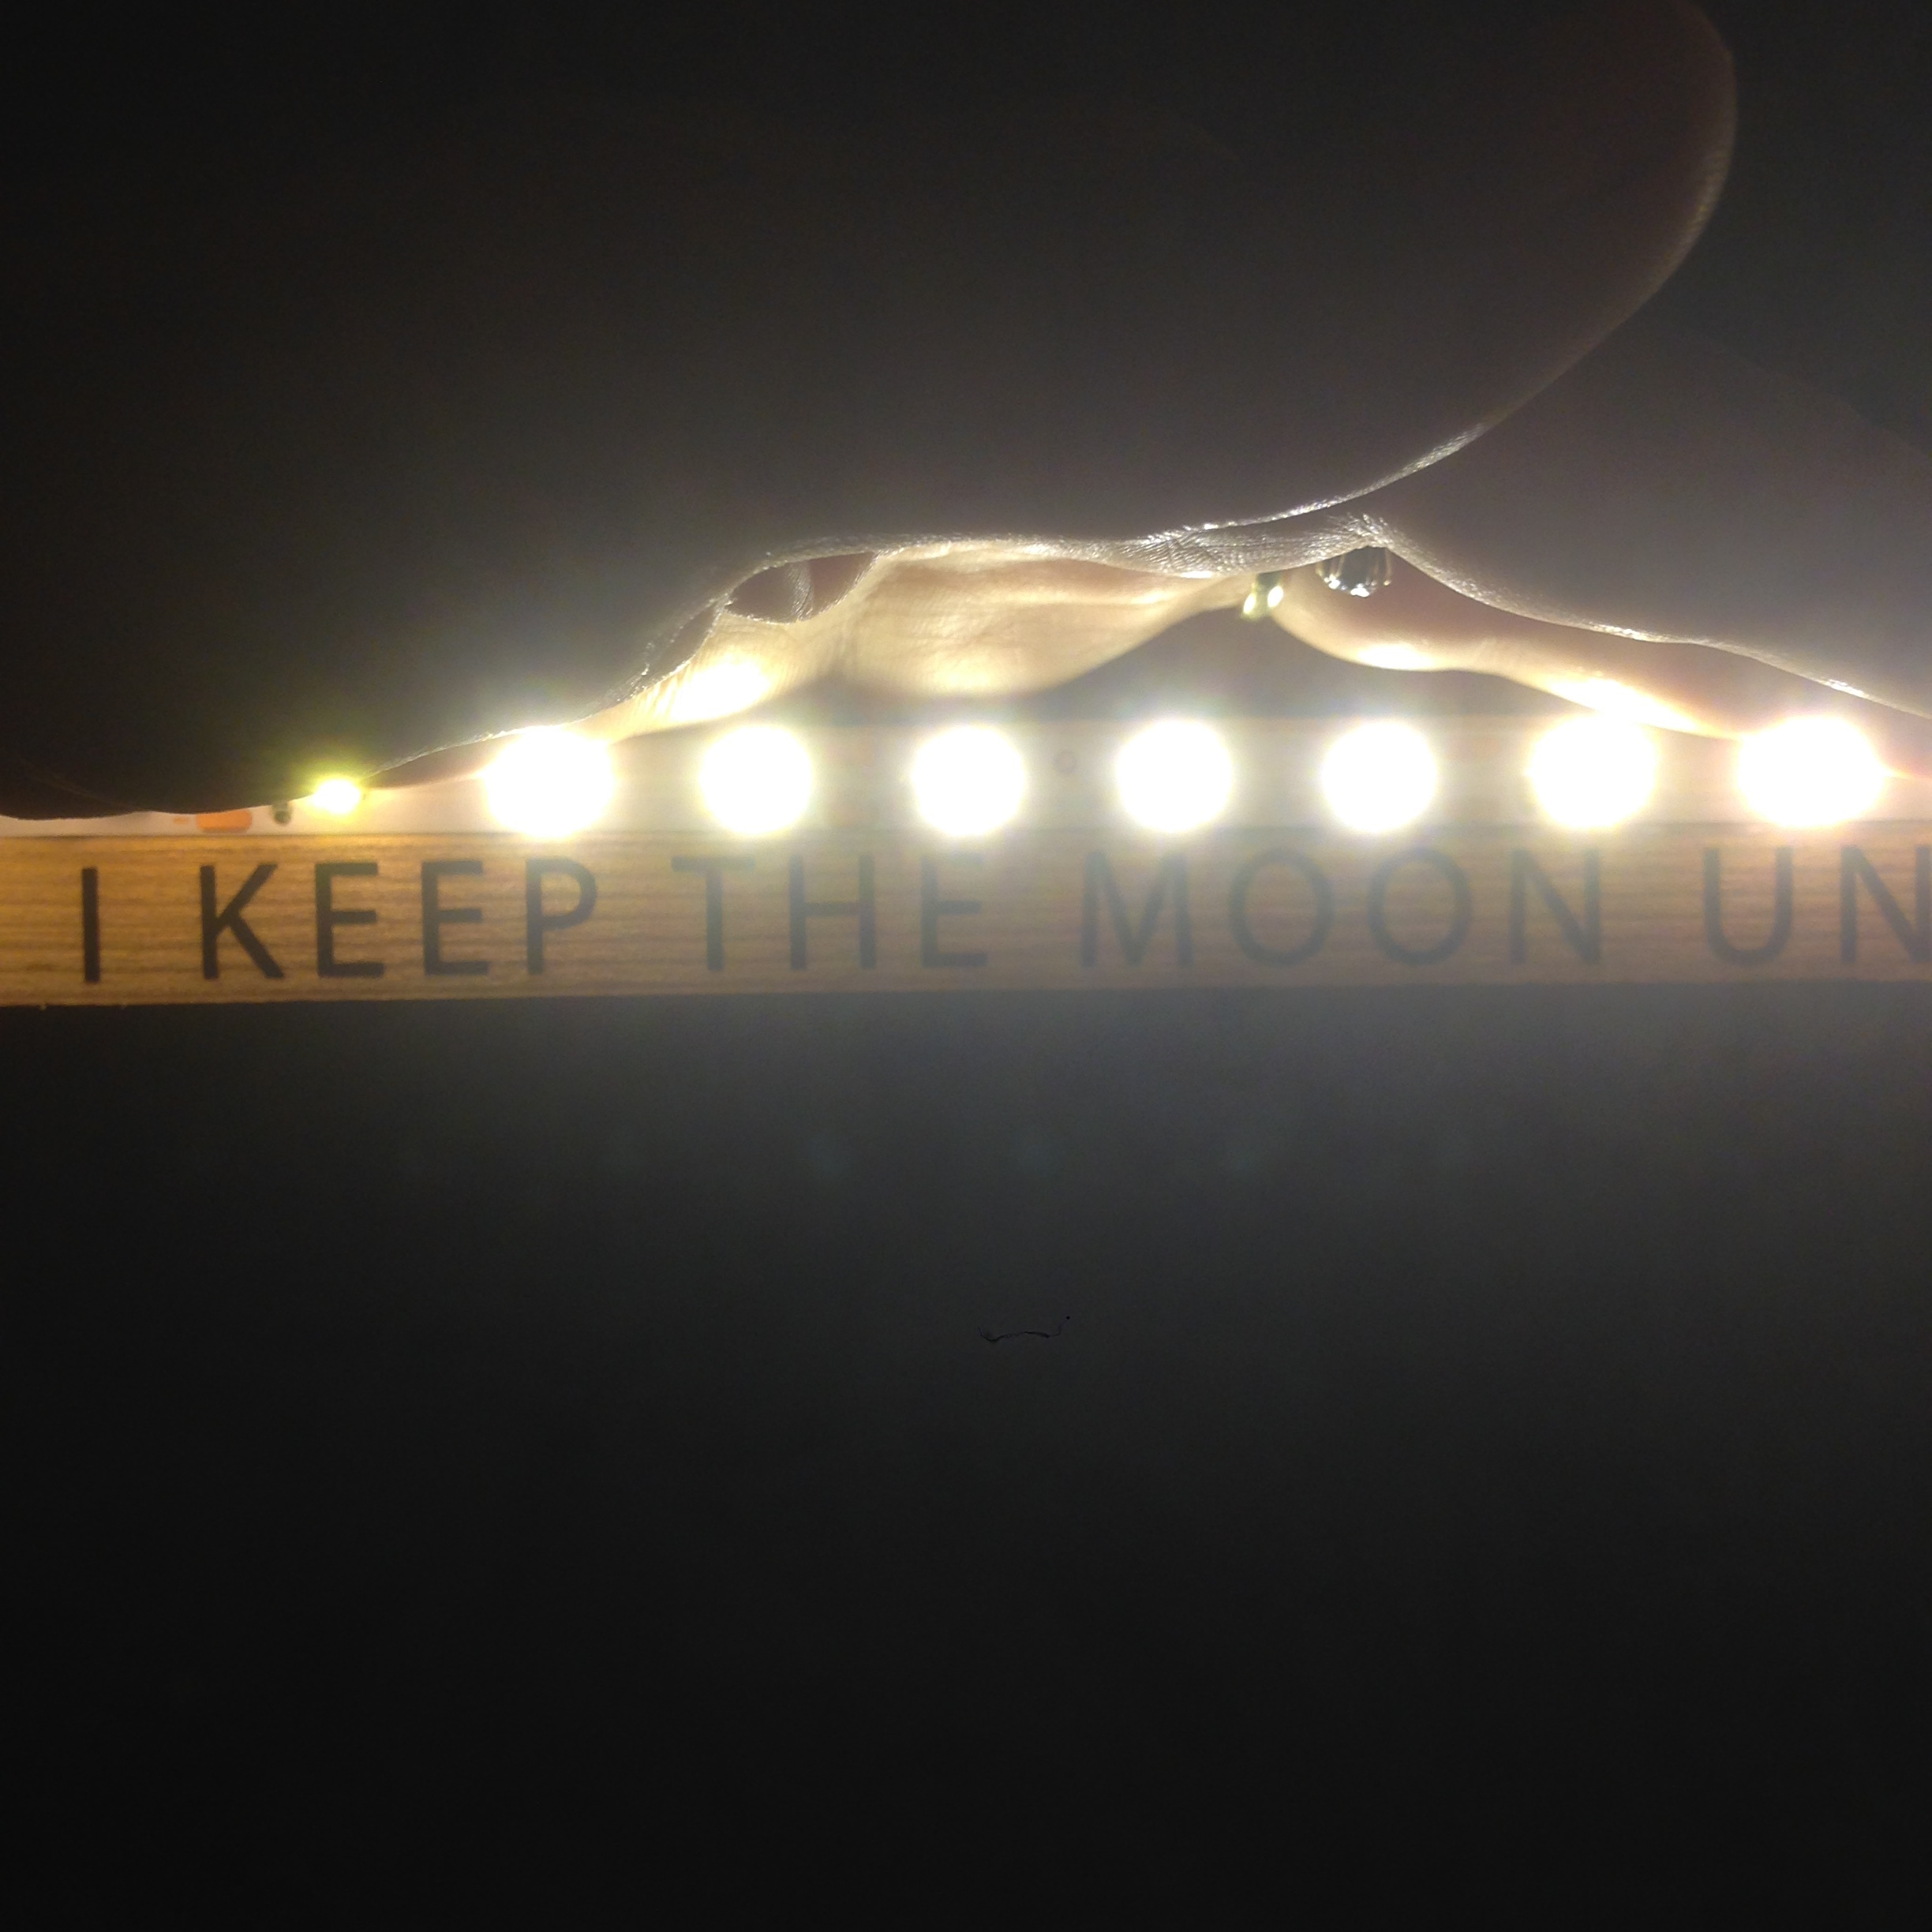 I KEEP THE MOON UNDER MY DRESS, text, LED, wood, 2017